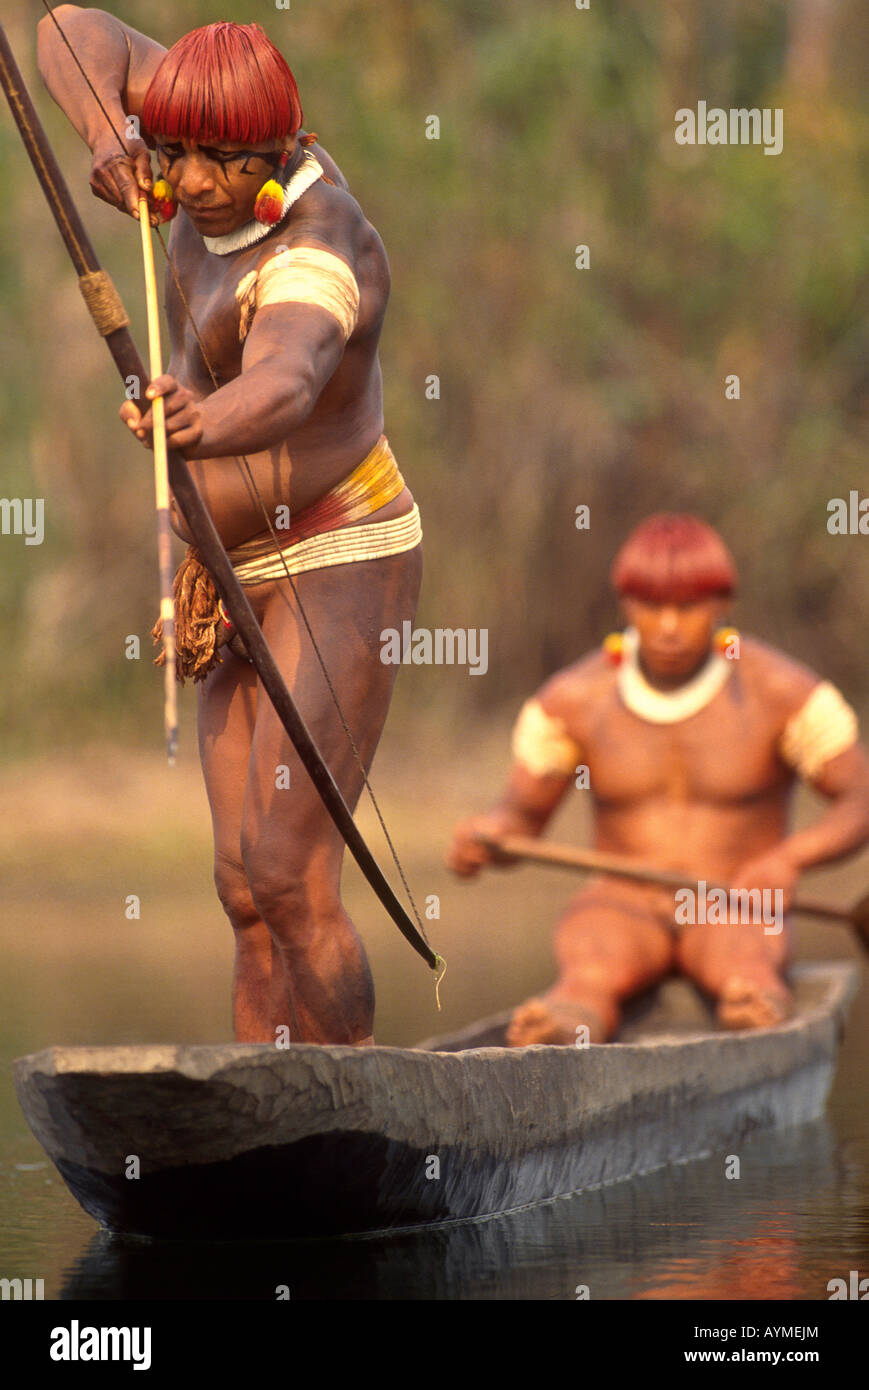 Xingu Amazon rainforest Brazil Yaulapiti indigenous People Indians in canoe fishing with bow and arrow - Stock Image